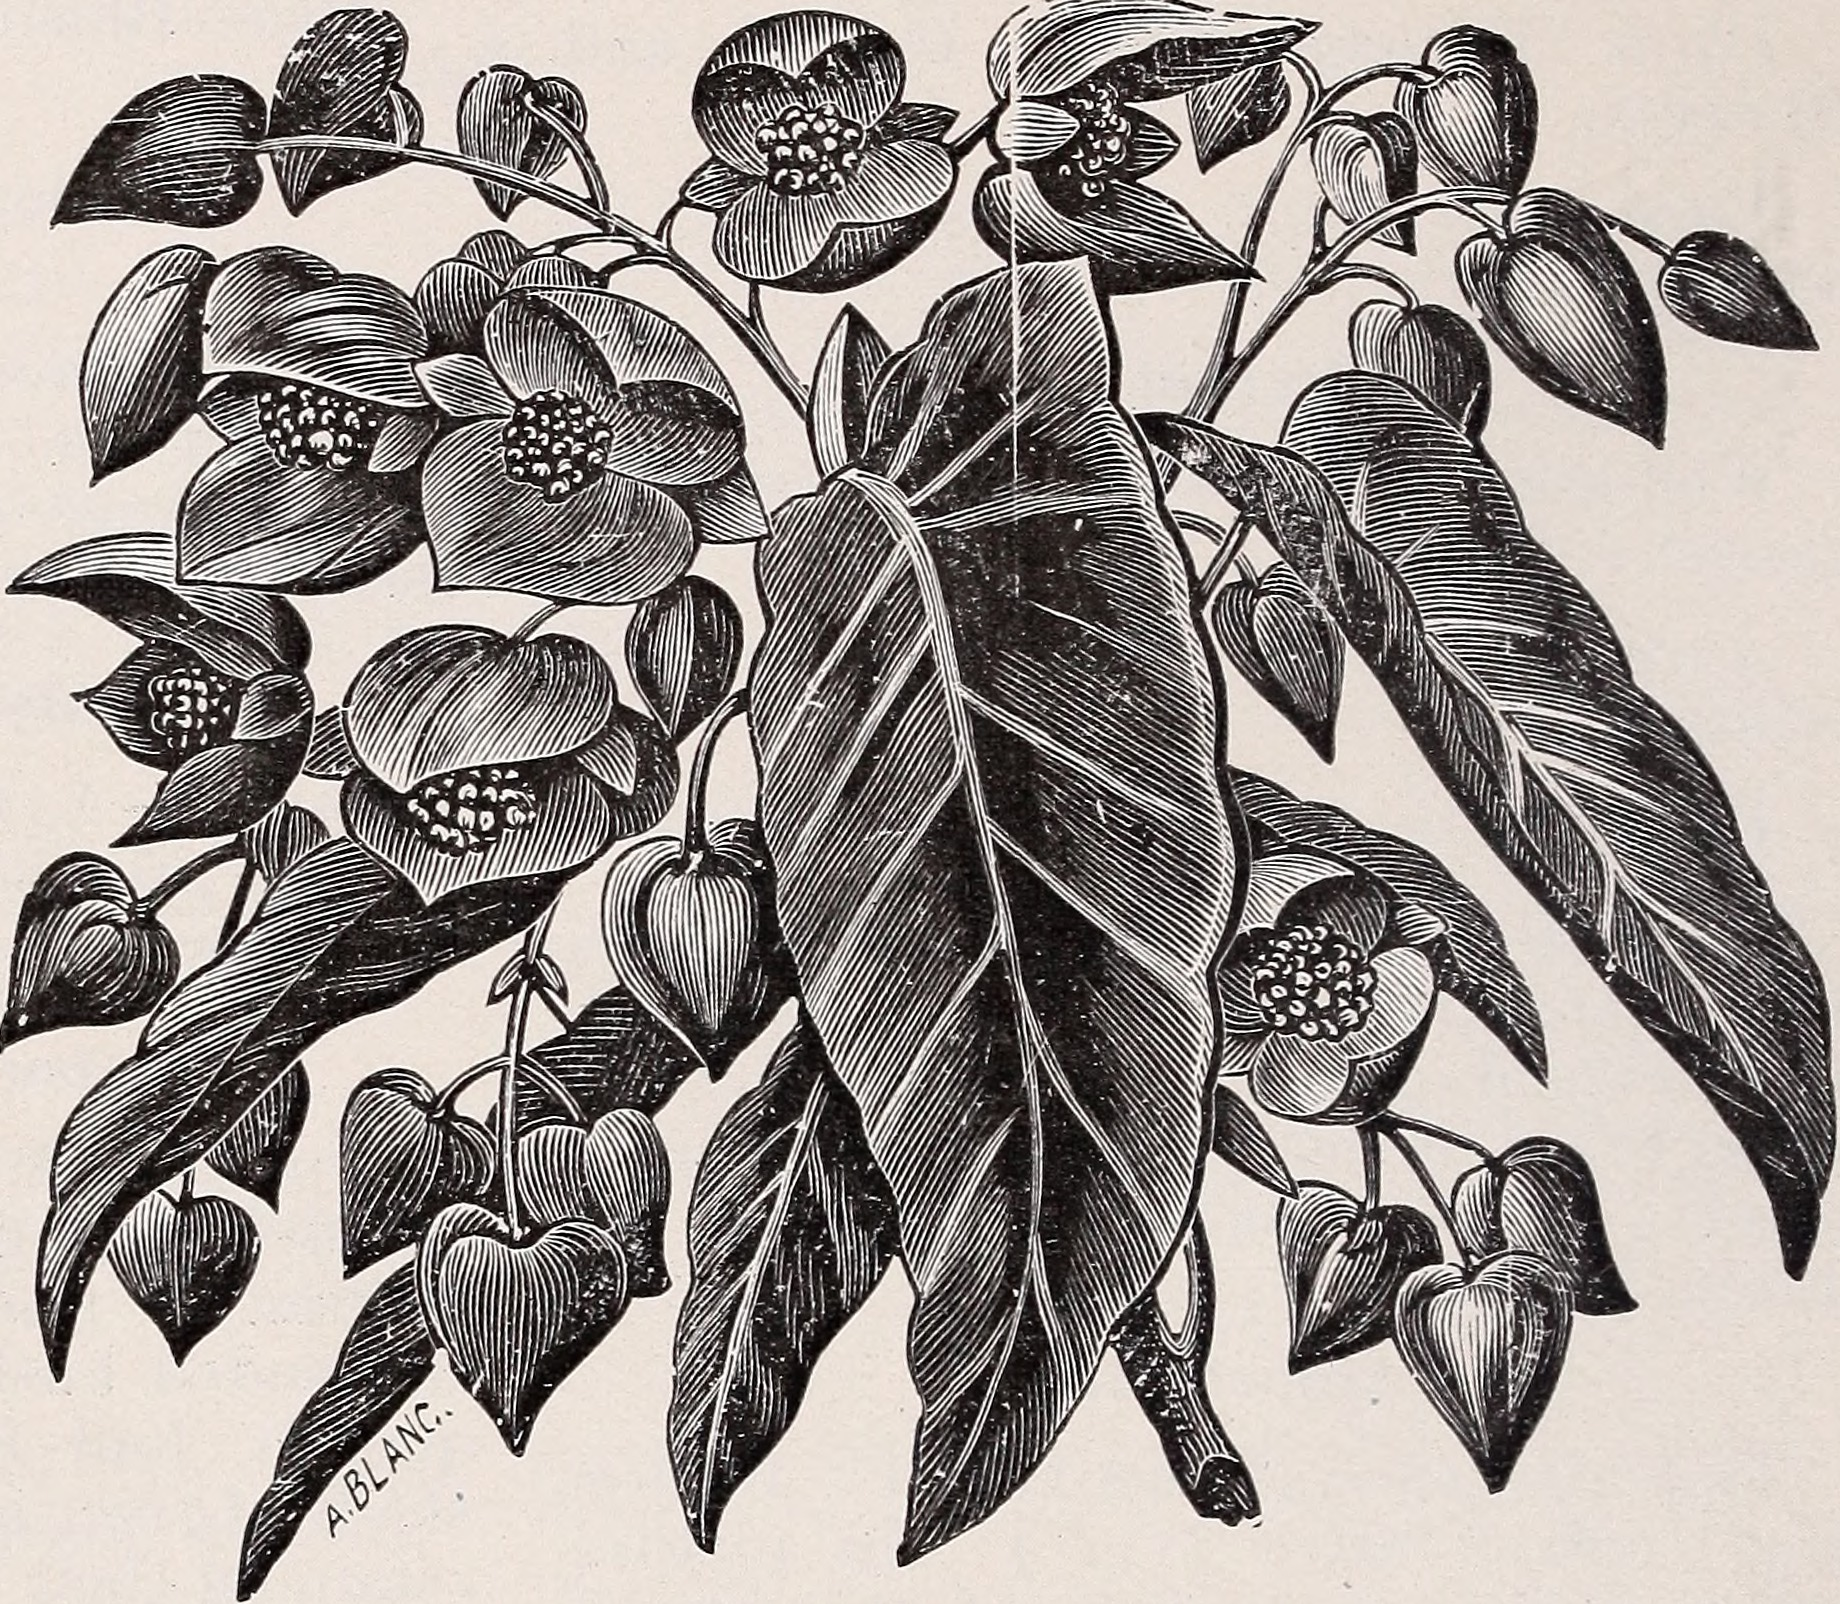 green leaves, oblong in sliape, with silvery markings. White flowers on tips of the stems. Price, 10 to 25 cents each. Sanguinea—Foliage red, with a deeper